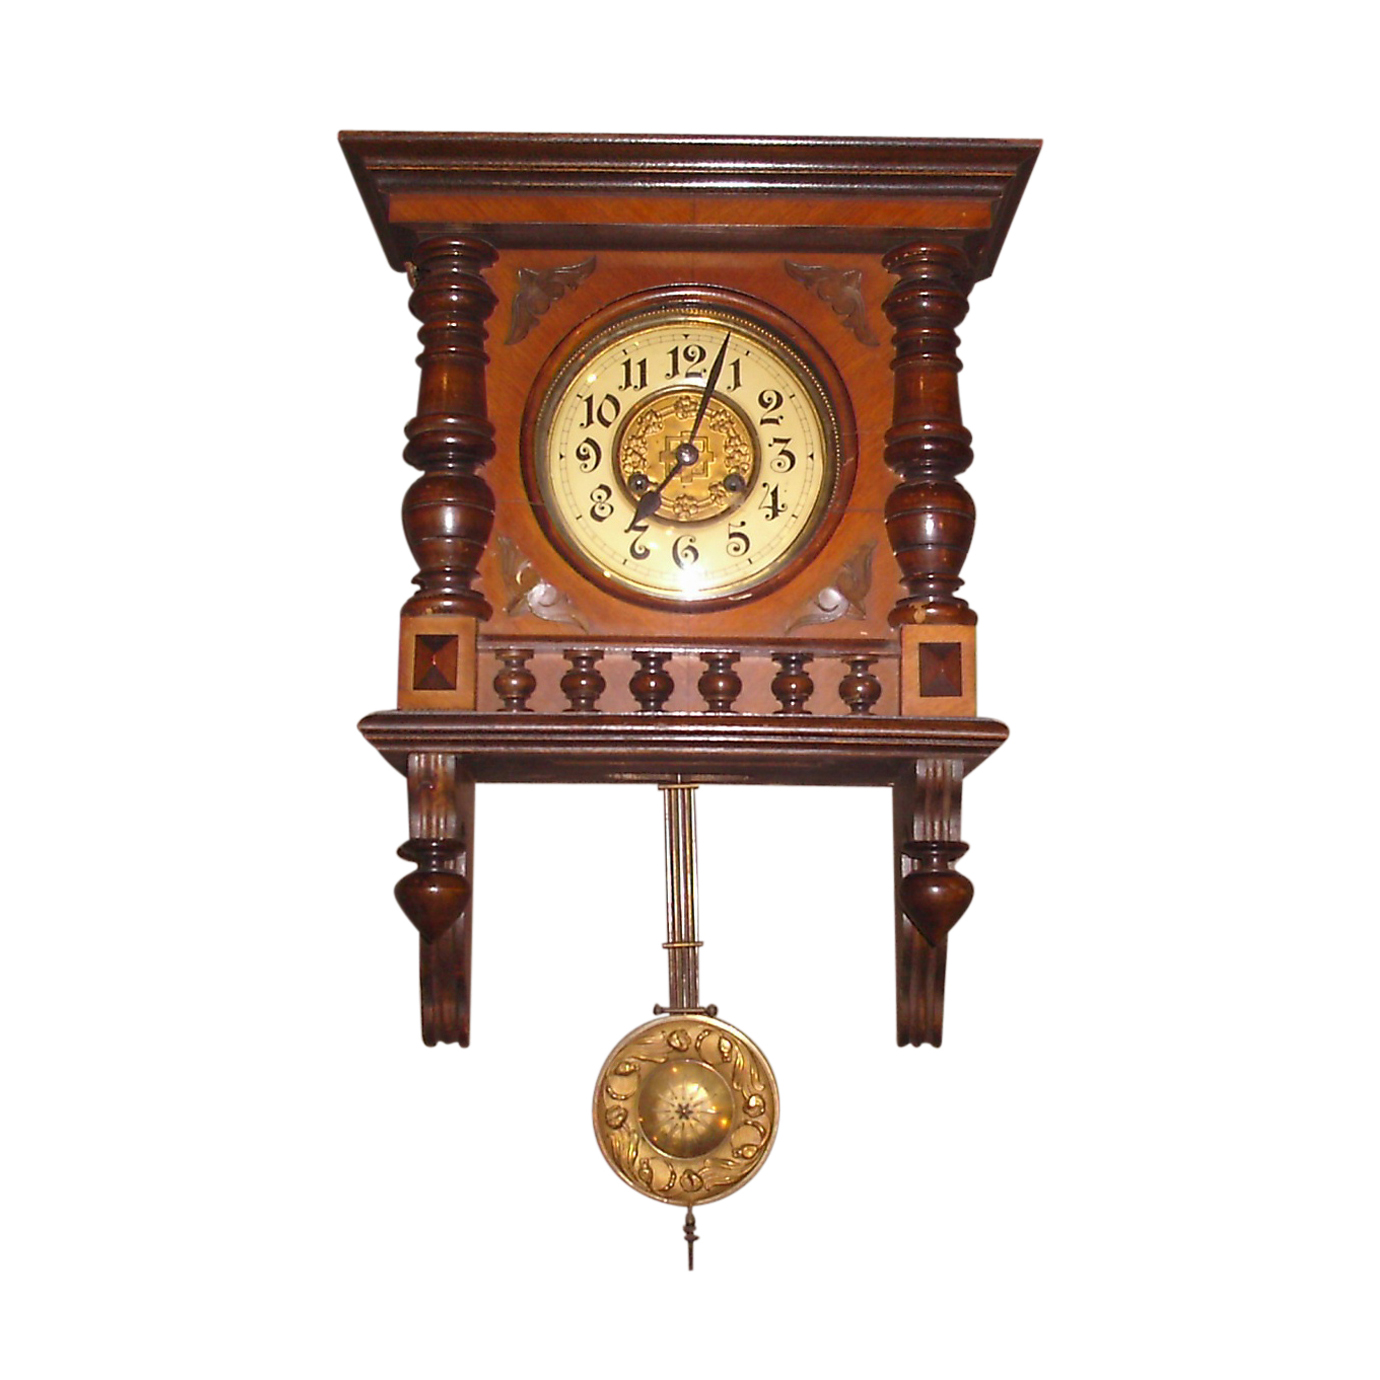 GERMAN REGULATOR WALL CLOCK WITH 8 DAY MOVEMENT